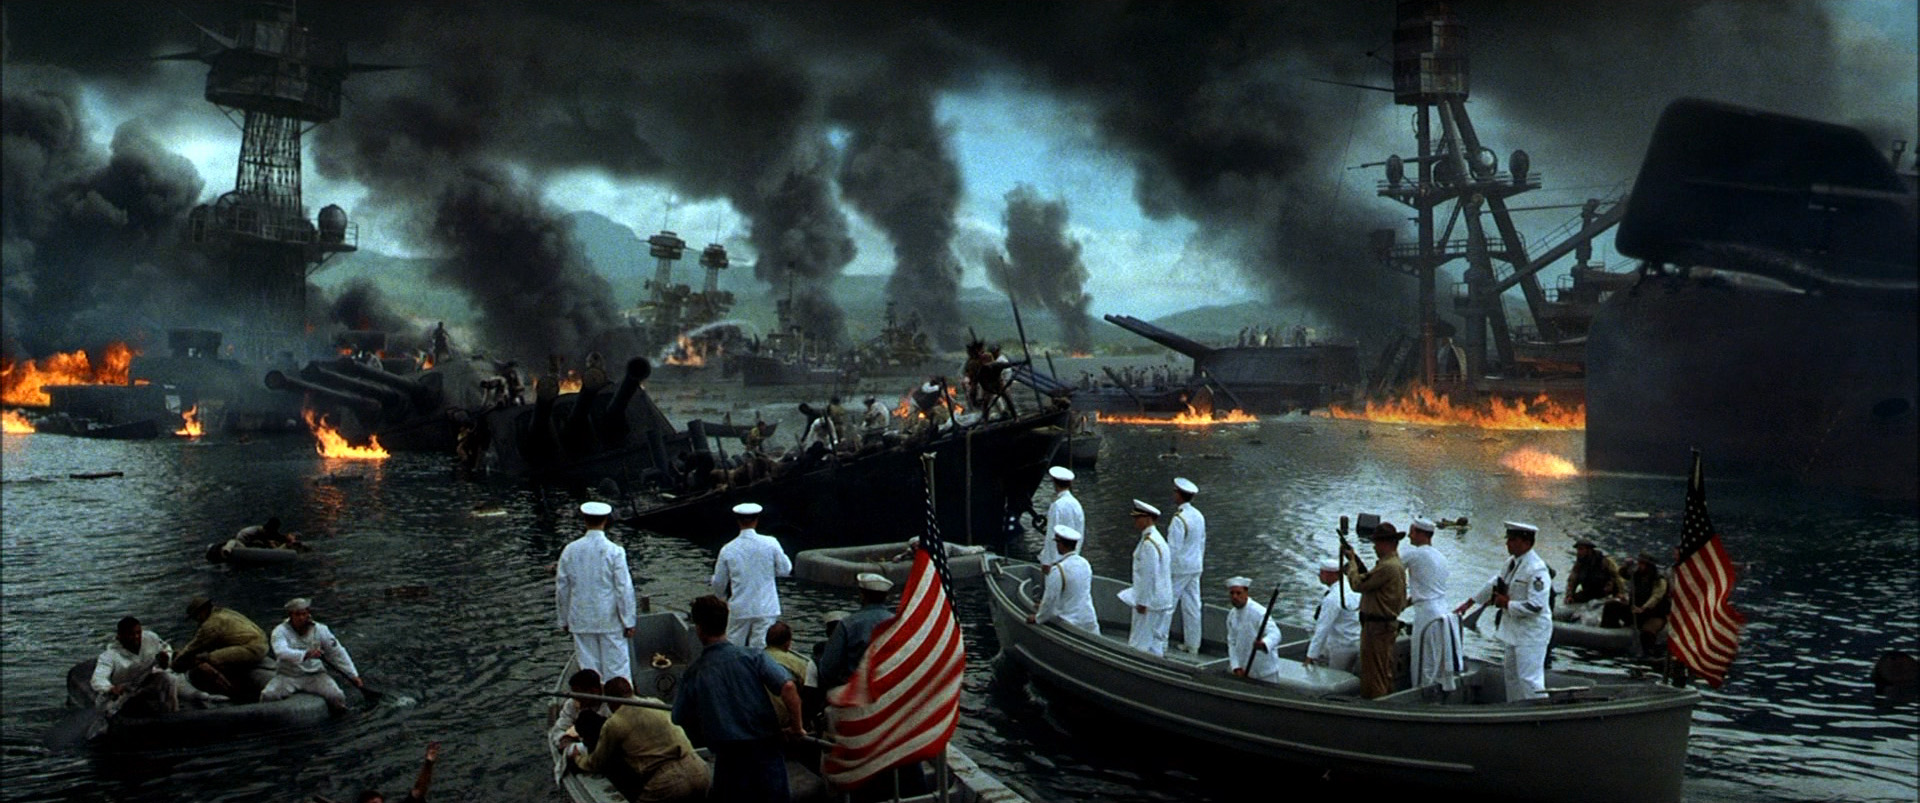 the boming of pearl harbor Get information, facts, and pictures about pearl harbor at encyclopediacom make research projects and school reports about pearl harbor easy with credible articles from our free, online encyclopedia and dictionary.